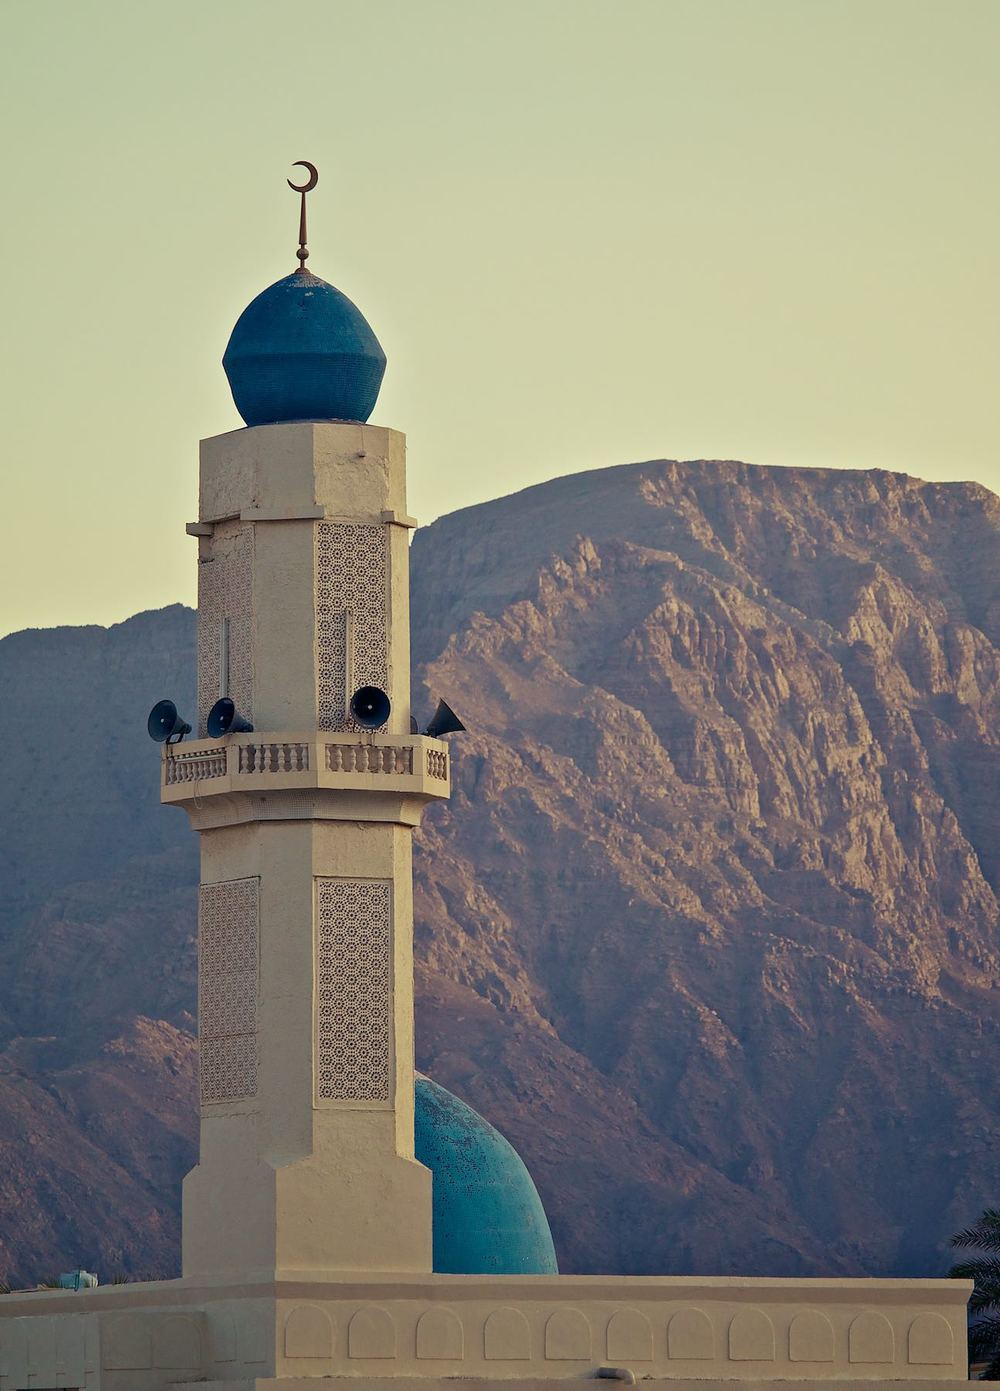 Mosques & Mountains